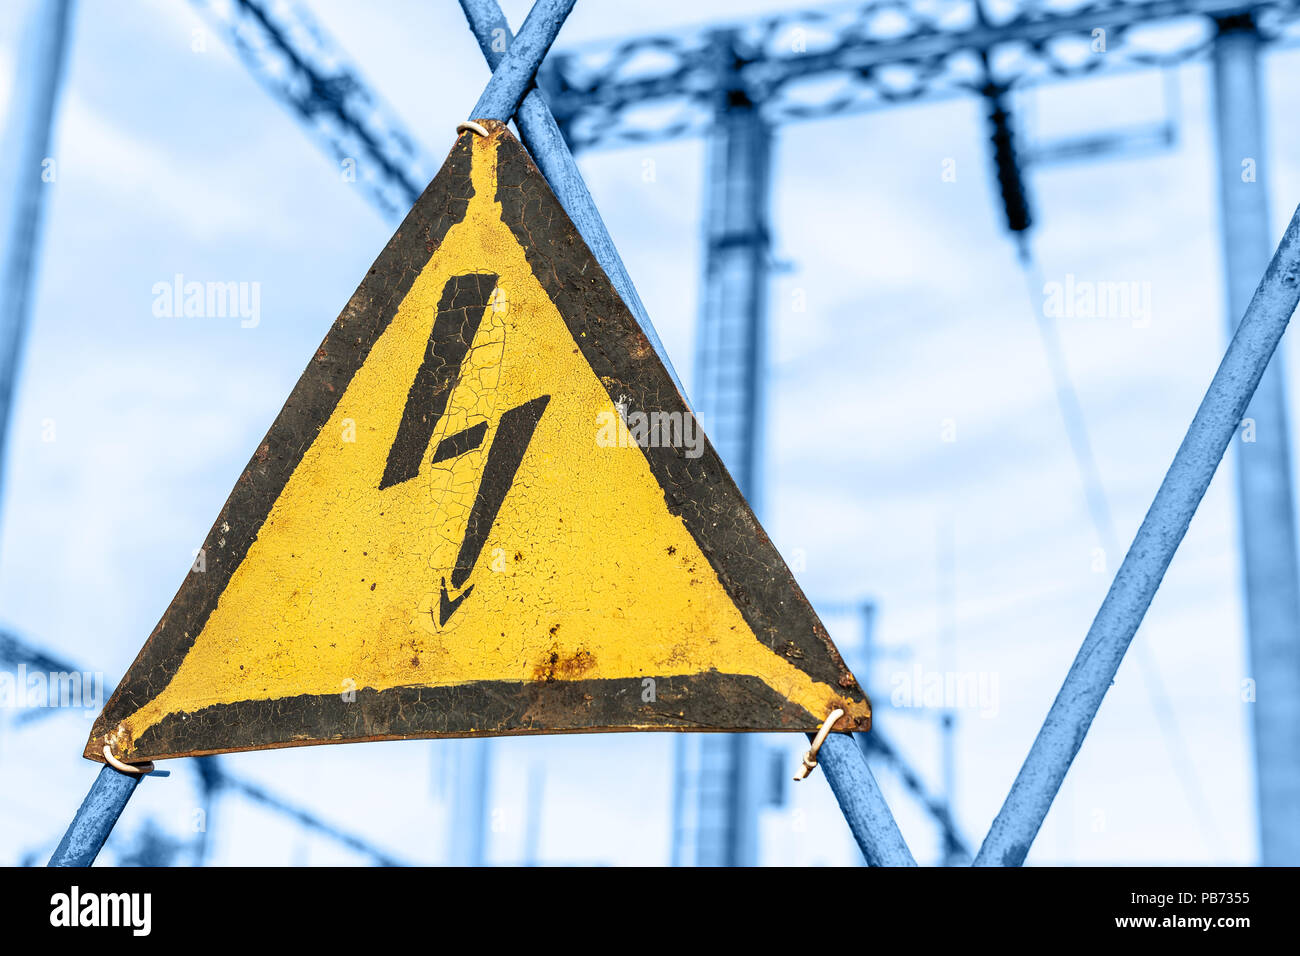 Old aged rusty triangle metal plate with High voltage warning sign. Power station with transformers and electricity distribution lines. Keep out Stock Photo